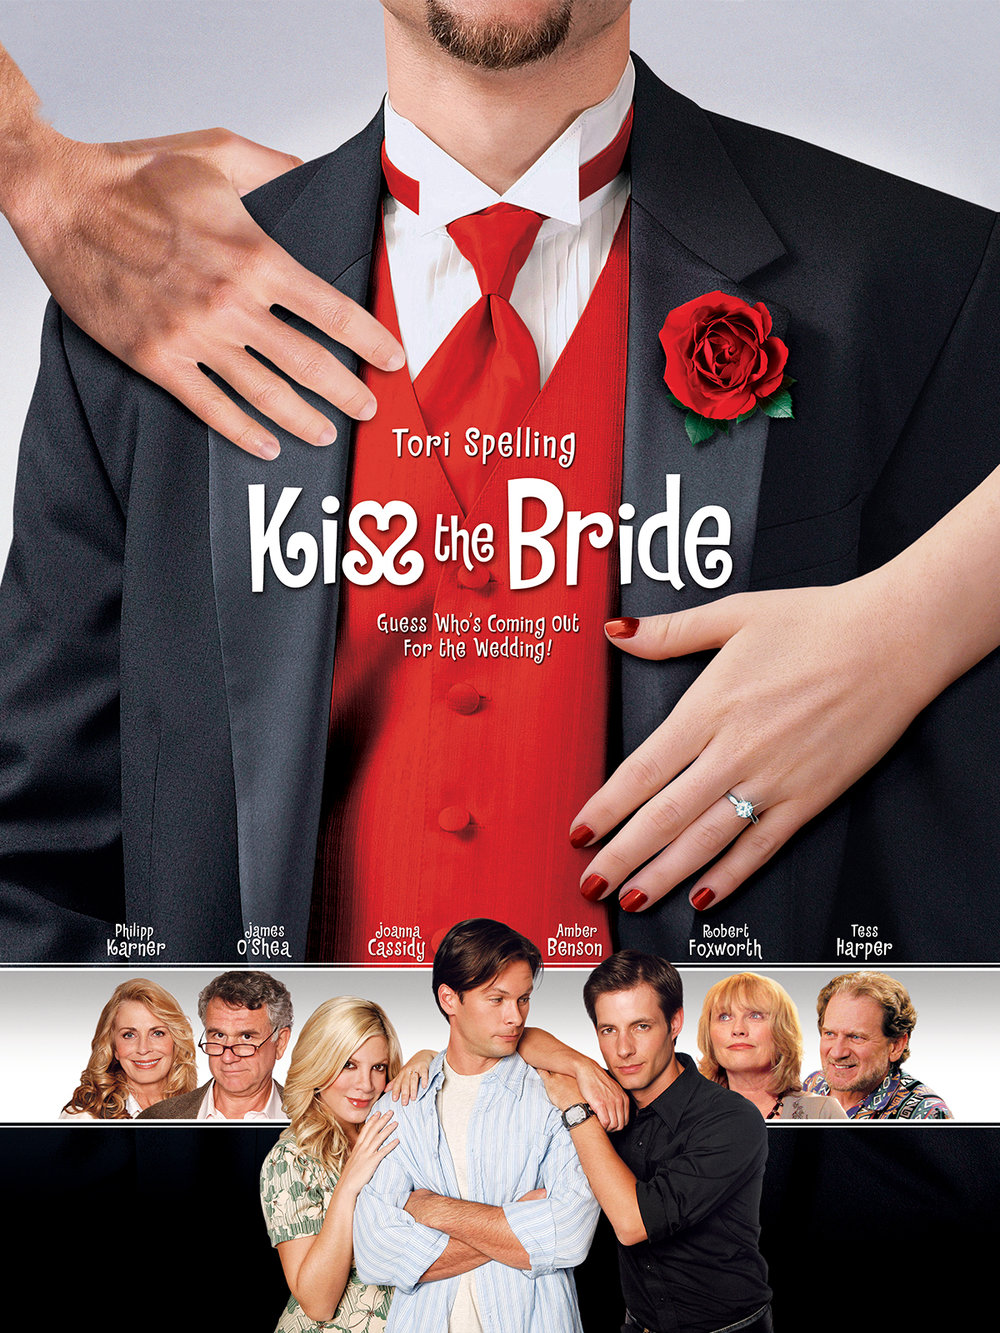 Here-KissTheBride-Full-Image-en-US-R1.jpg